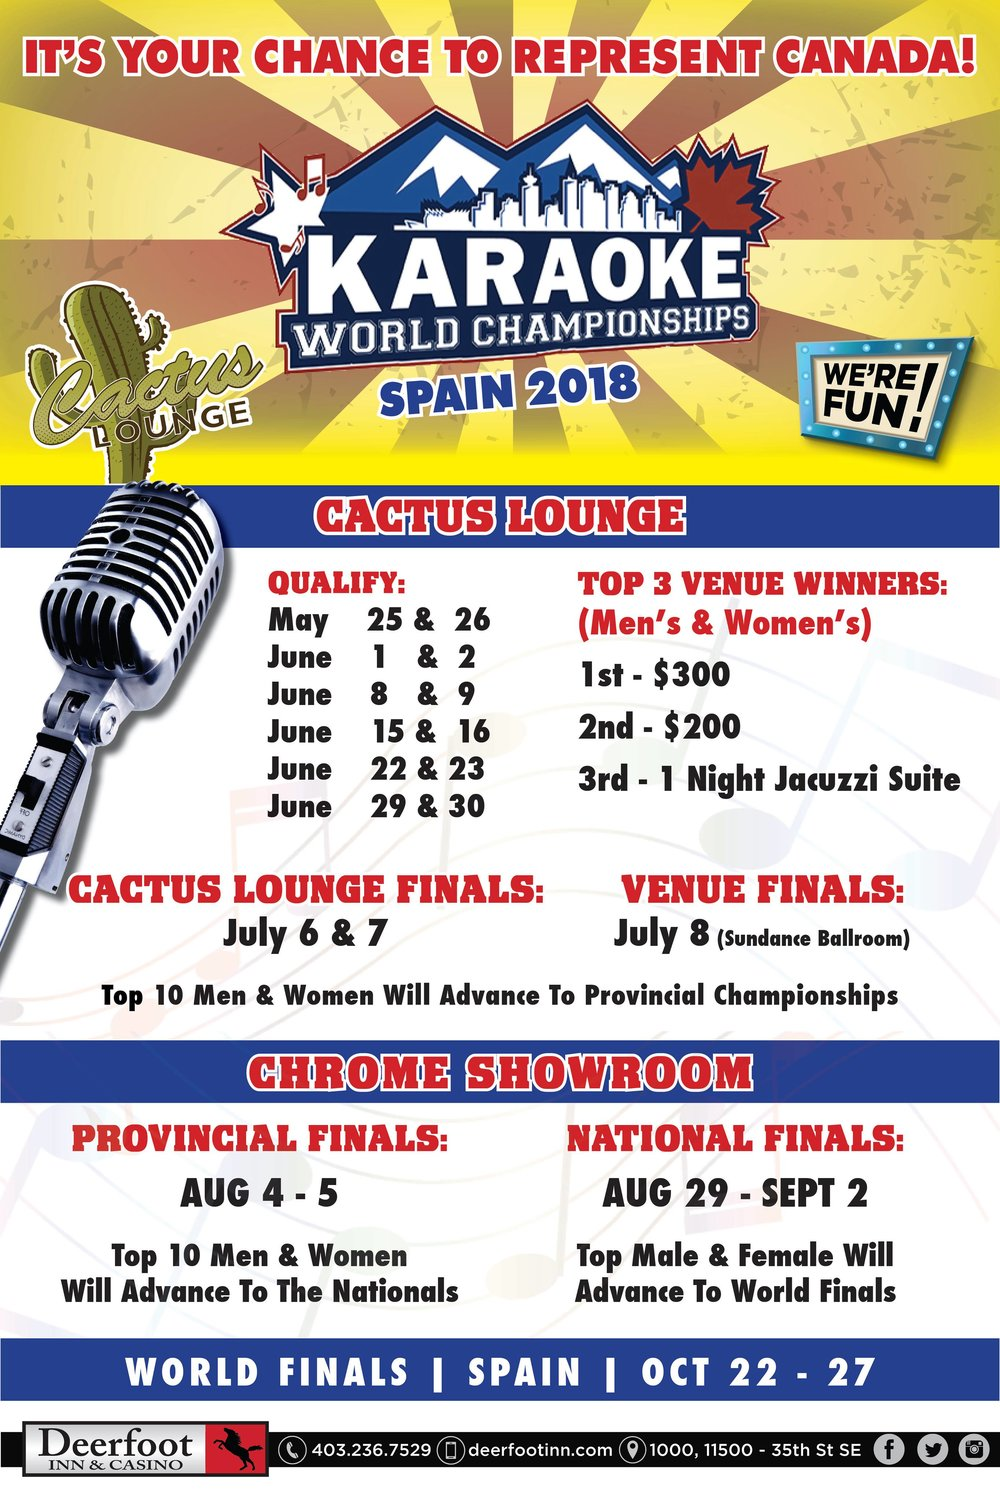 Deerfoot Inn & Casino - 1000, 11500 - 35th Street SE, Calgary, AlbertaTwelve nights to qualify - every Friday and Saturday from May 25th to June 30th!!Check-in between 8:00 and 9:15 pm - Karaoke (for non-competitors) starts at 9:00, and competition starts at 9:30 pm.For this Venue, attend at least 2 of the 12 qualifying nights and sing 1 song each night; however, you can attend as many as you would like. When qualifying nights are complete, the top scores from 2 separate songs will be used to calculate your standing and determine if you advance to the Venue Finals. The top 30 men and 30 women who will advance to the Venue Finals will be announced on Monday, July 2nd.If you qualify for the Venue Finals, you will sing 2 songs (different from those your qualified with). The first song will be on either Friday, July 6th or Saturday, July 7th, and everyone will sing their second song at the Venue Finale on Sunday, July 8th in the Sundance Ballroom.PROVINCIAL FINALS - will be held at Deerfoot Inn & Casino in the Chrome Showroom on August 4th & 5th. To book a room at the special rate reserved for competitors (and their friends and family), use promo code GKARPROV (booking July 20th onward).Hosted by: KISS Productions